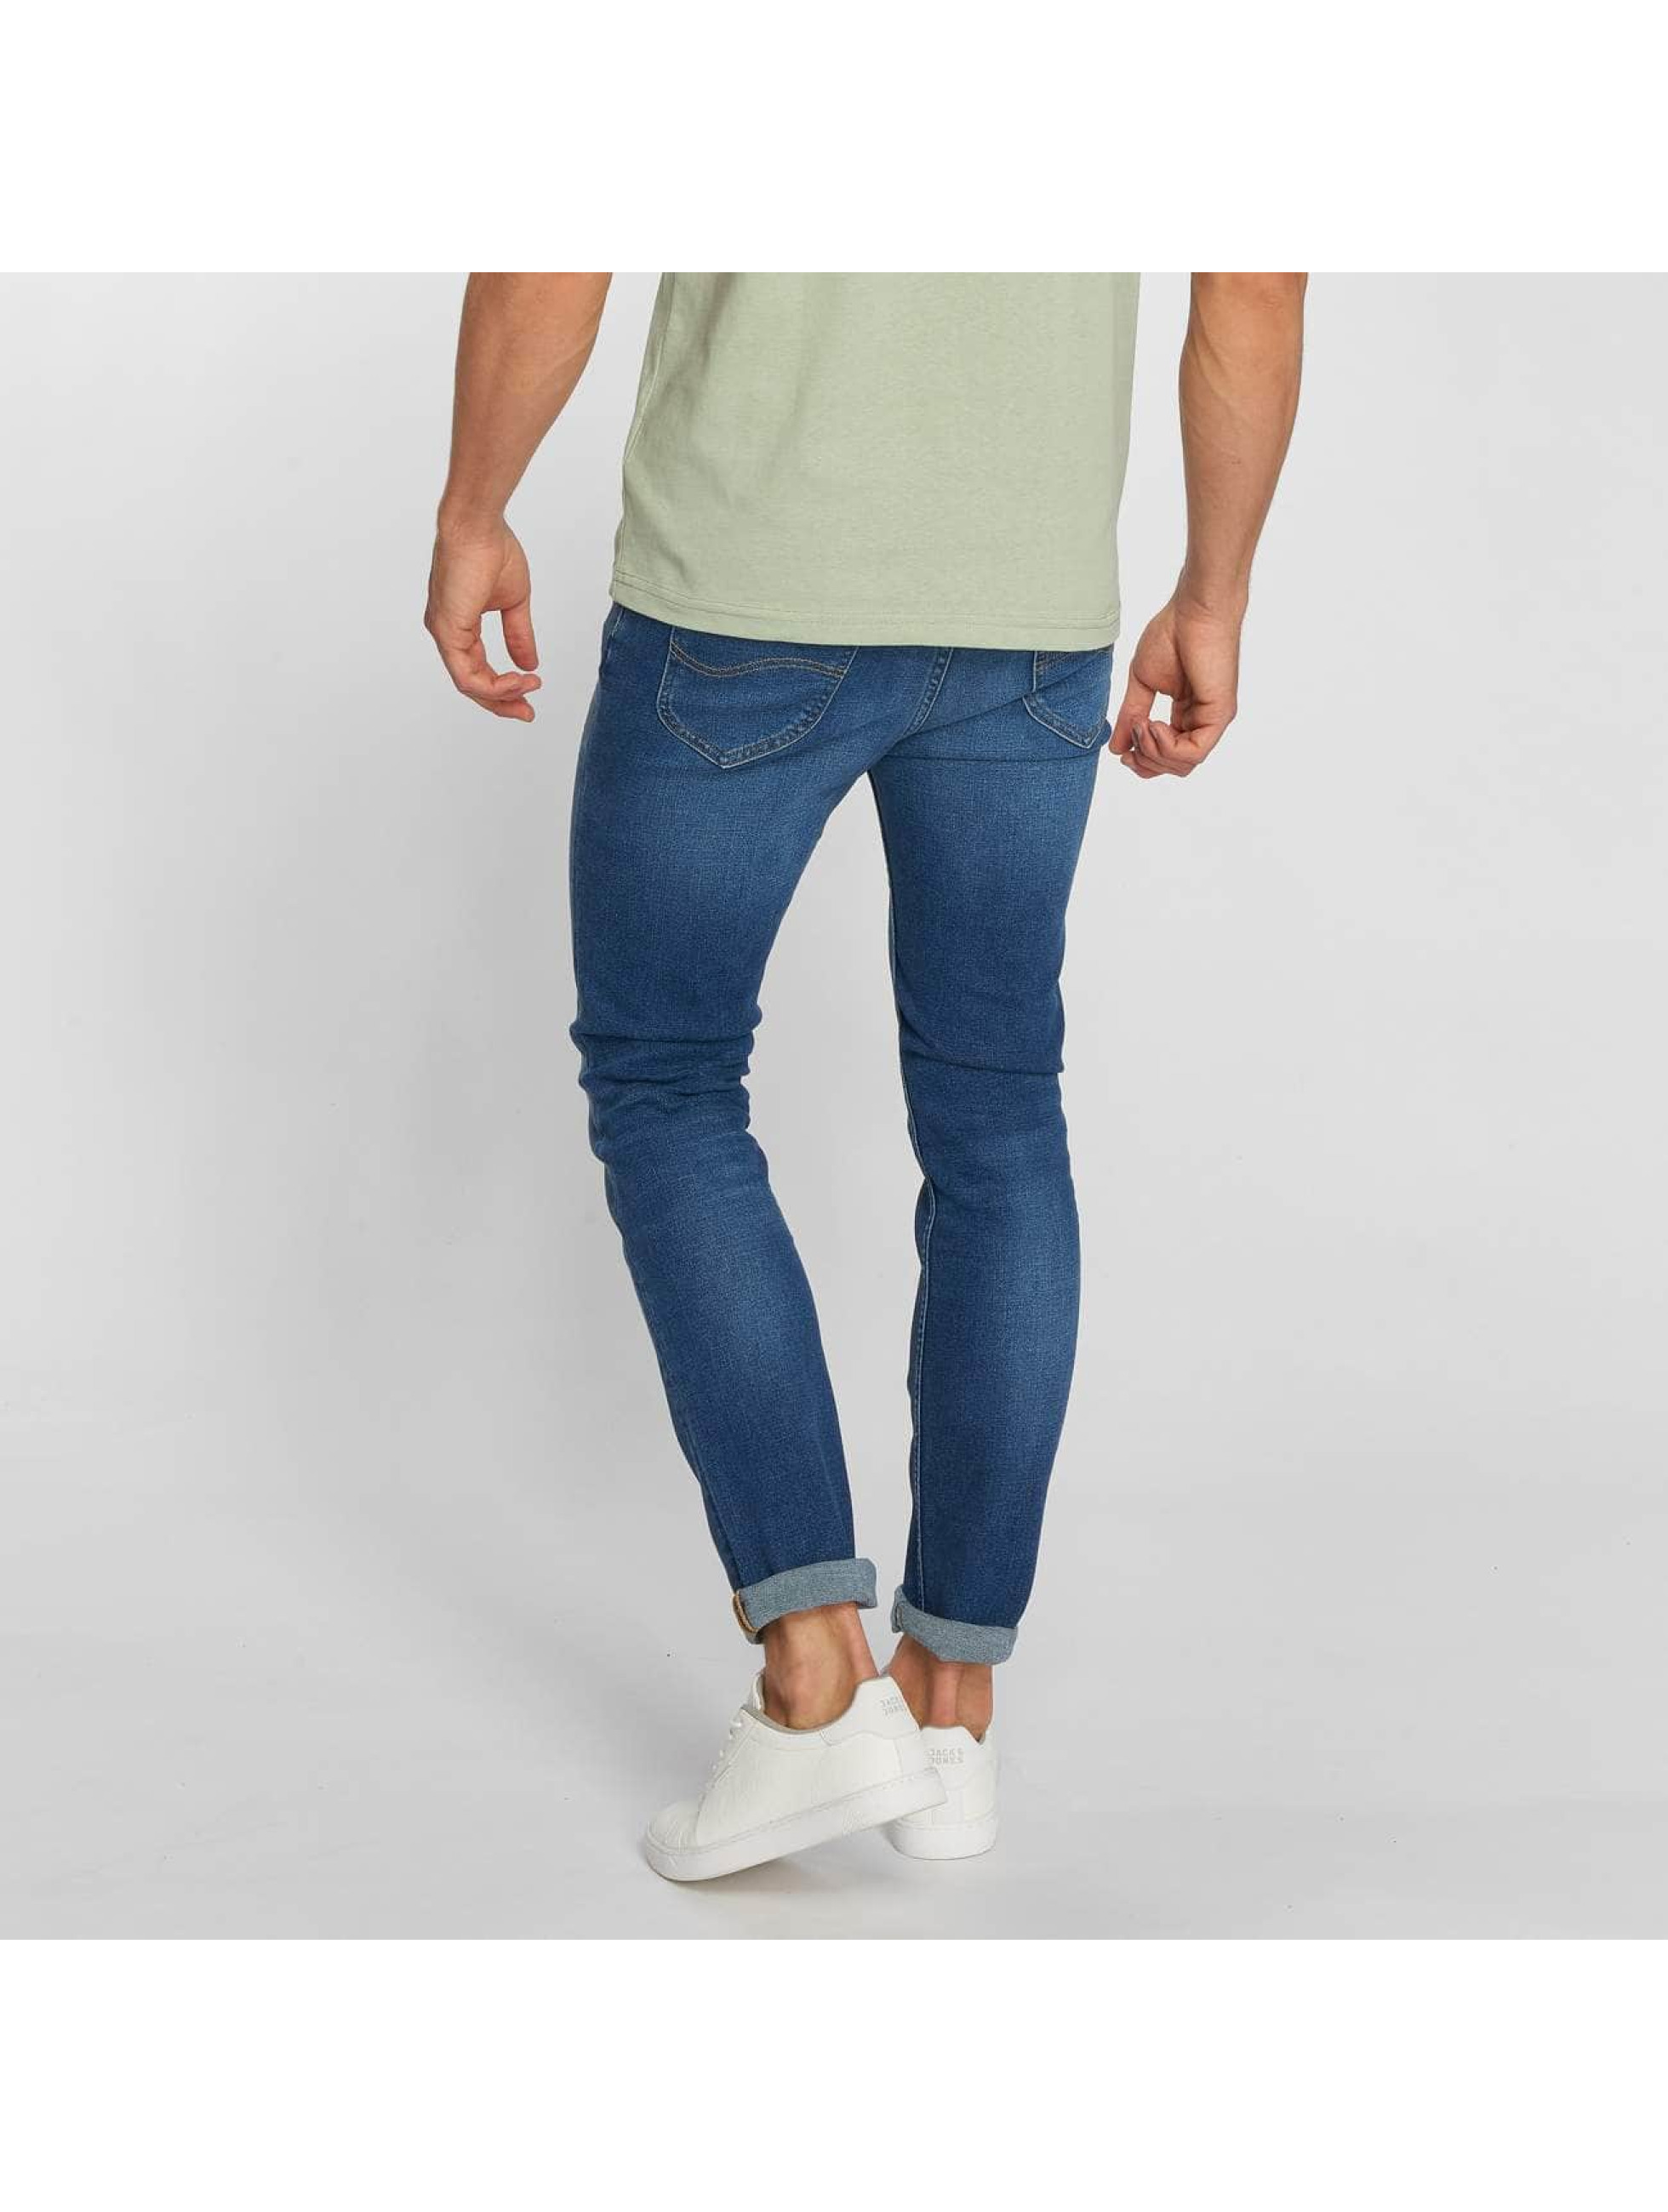 Lee Slim Fit Jeans Regular blau